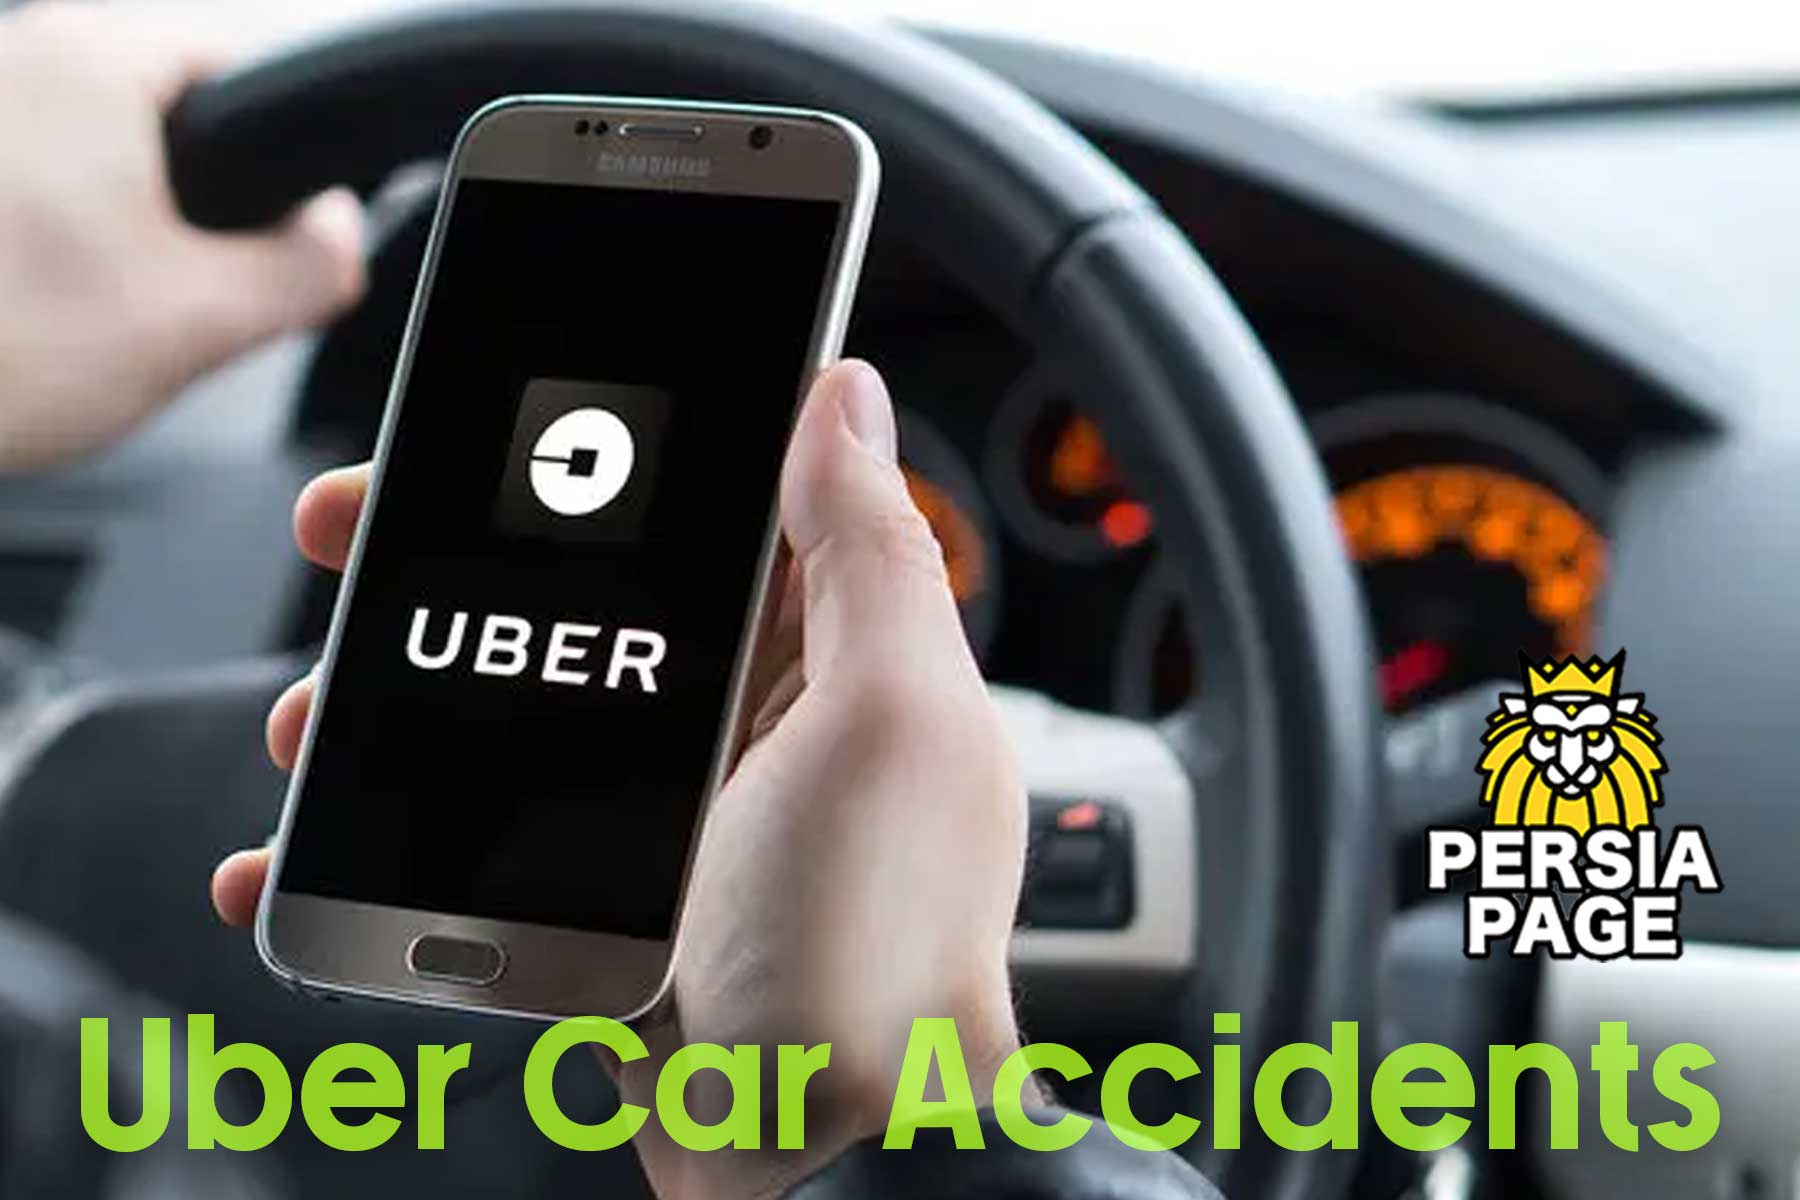 uber car accidents, Persiapage